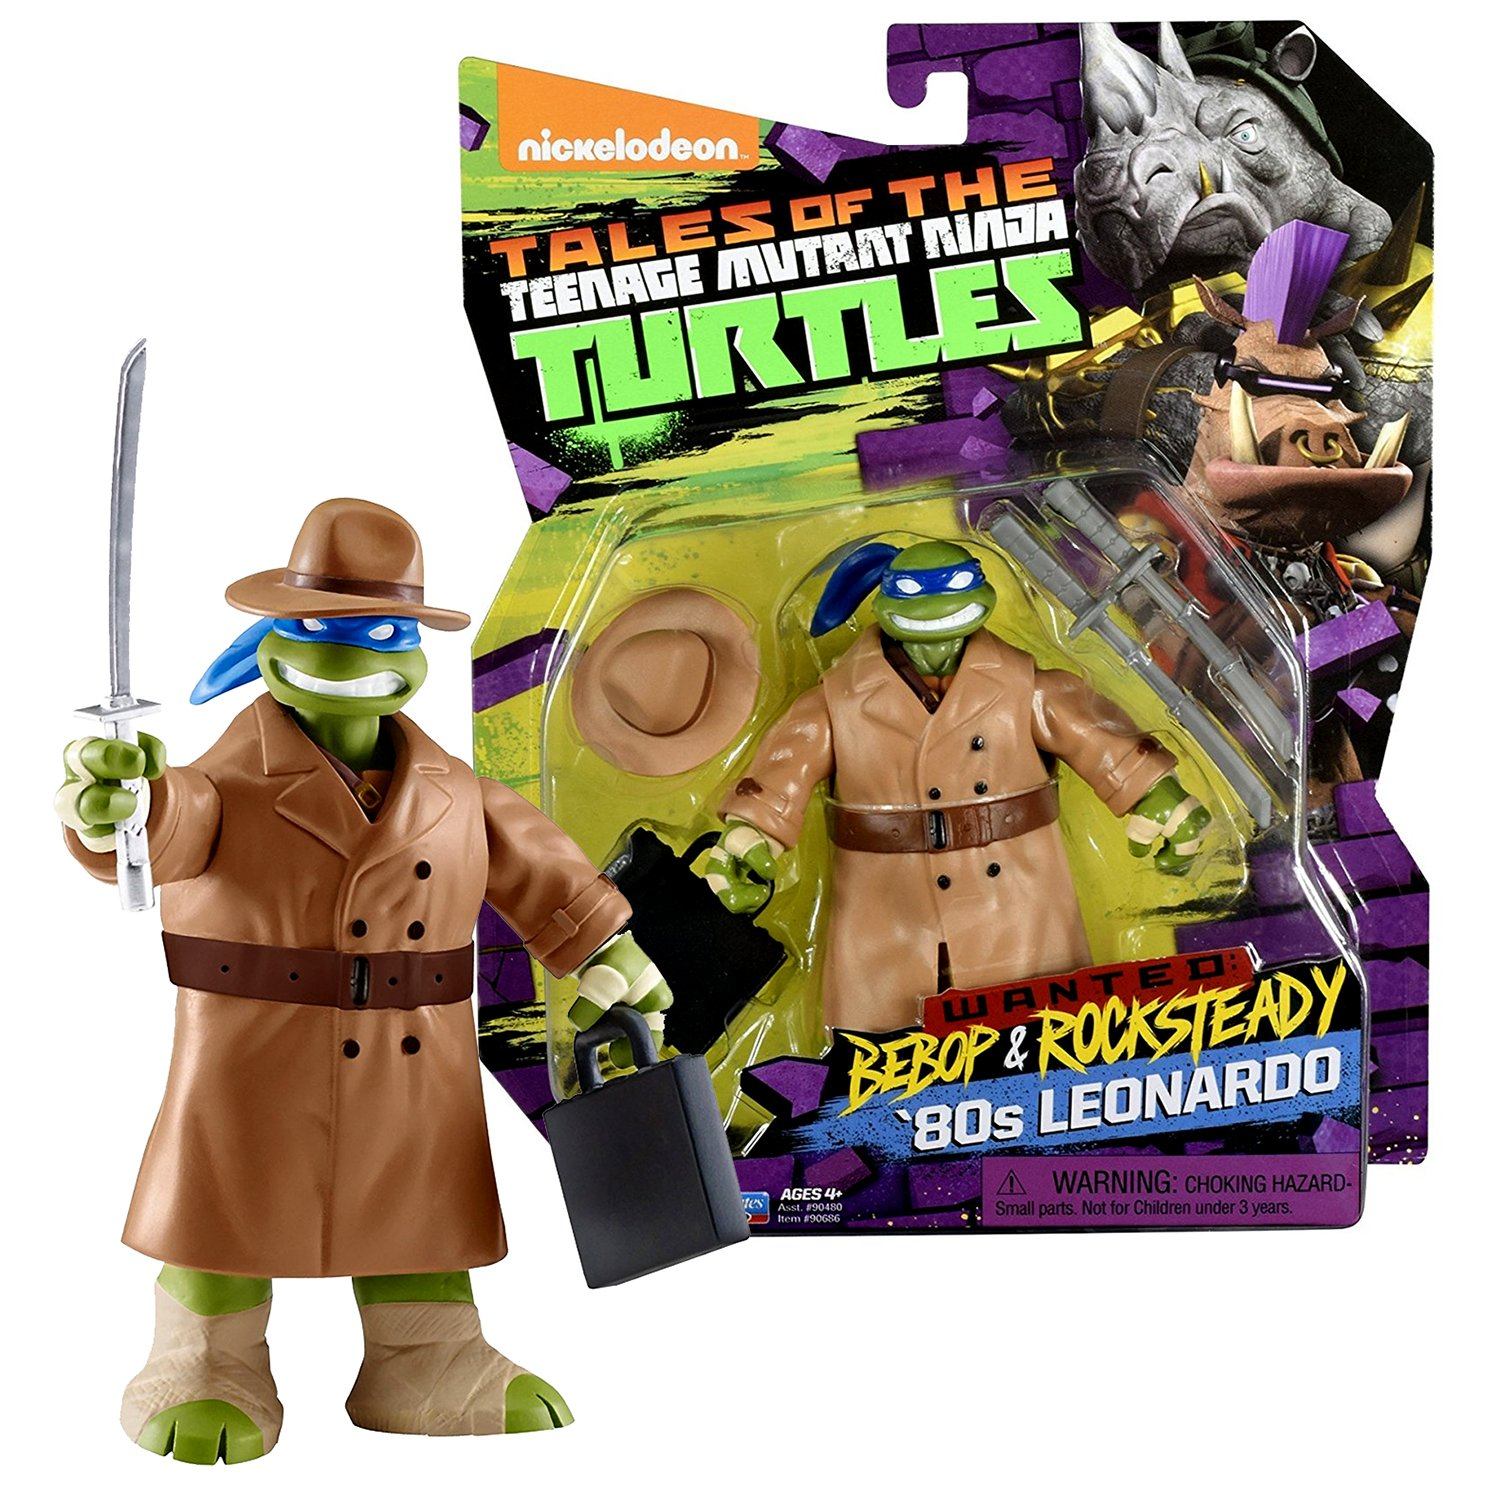 TMNT Year 2017 Tales of Teenage Mutant Ninja Turtles Wanted Bebop & Rocksteady Series 5 Inch Tall Figure - '80s LEONARDO in Trench Coat with Suitcase. Hat and Twin Swords